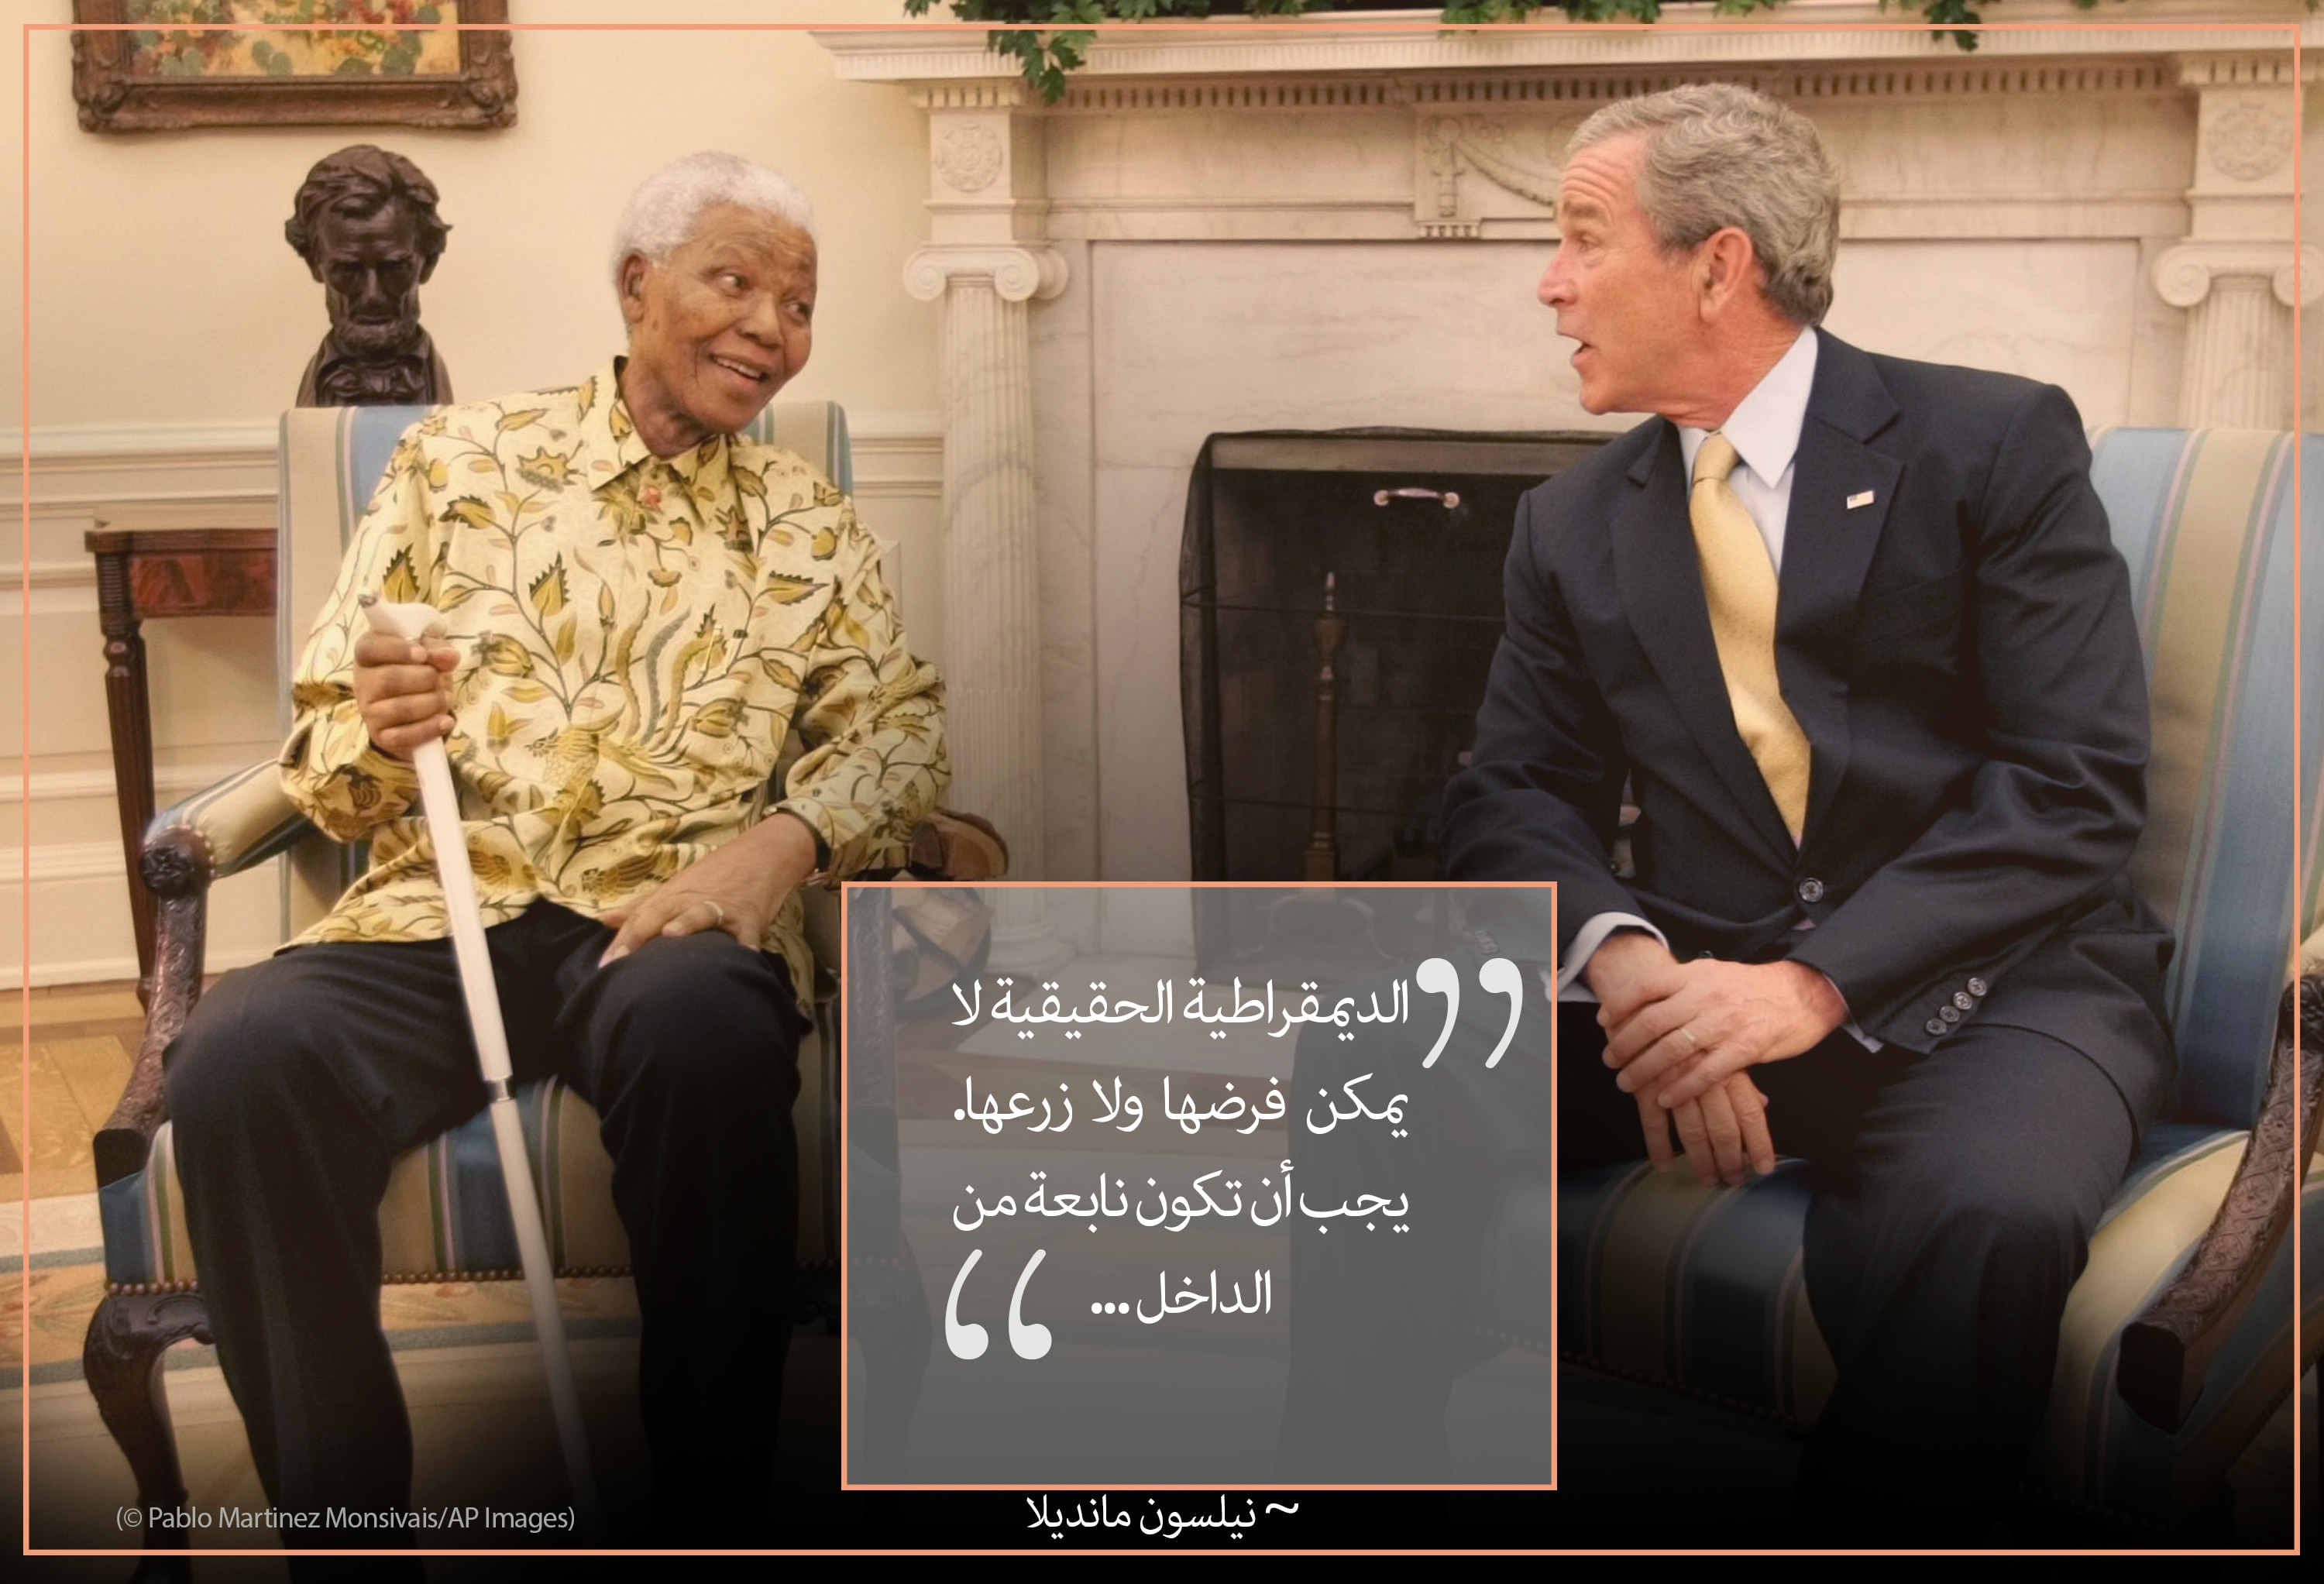 Photo of Mandela and President George W. Bush sitting, Mandela quote about homegrown democracy (© Pablo Martinez Monsivais/AP Images)